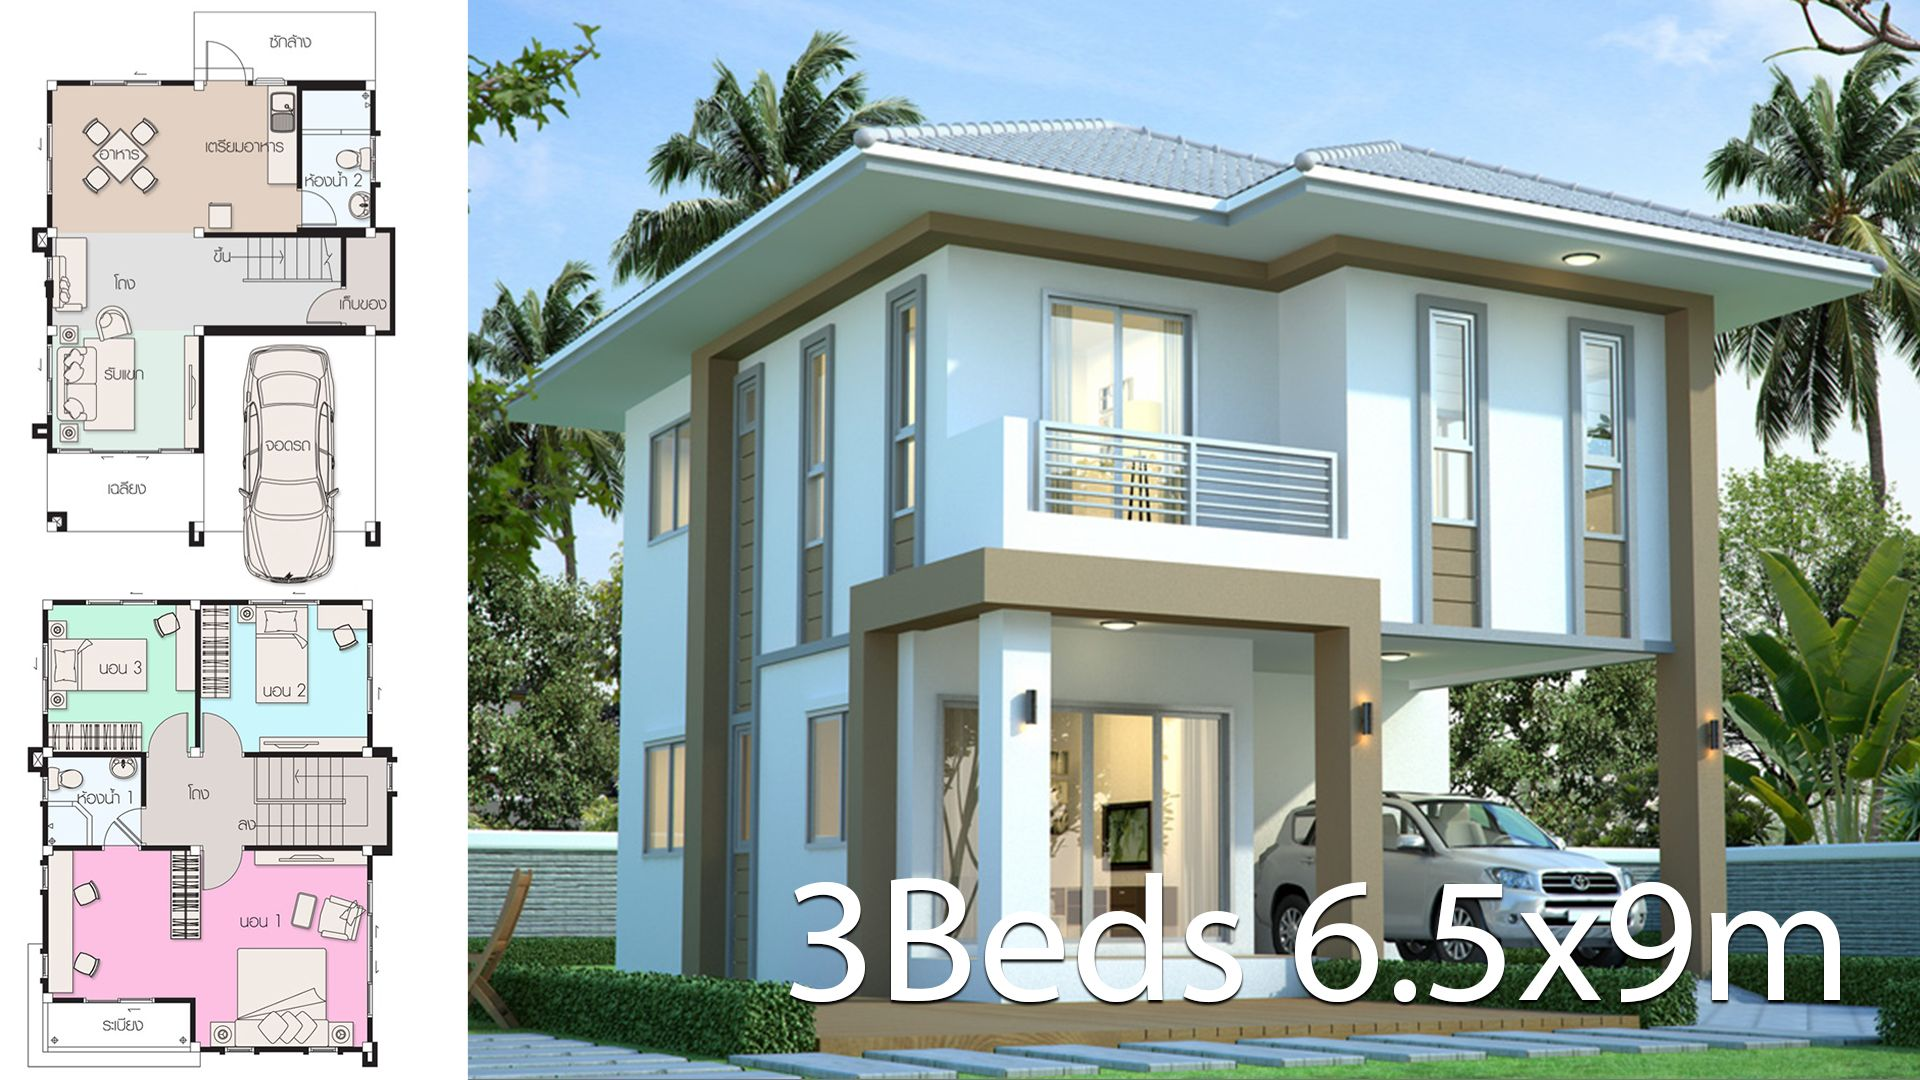 House design plan 6.5x9m with 3 bedrooms | Home design plans ...